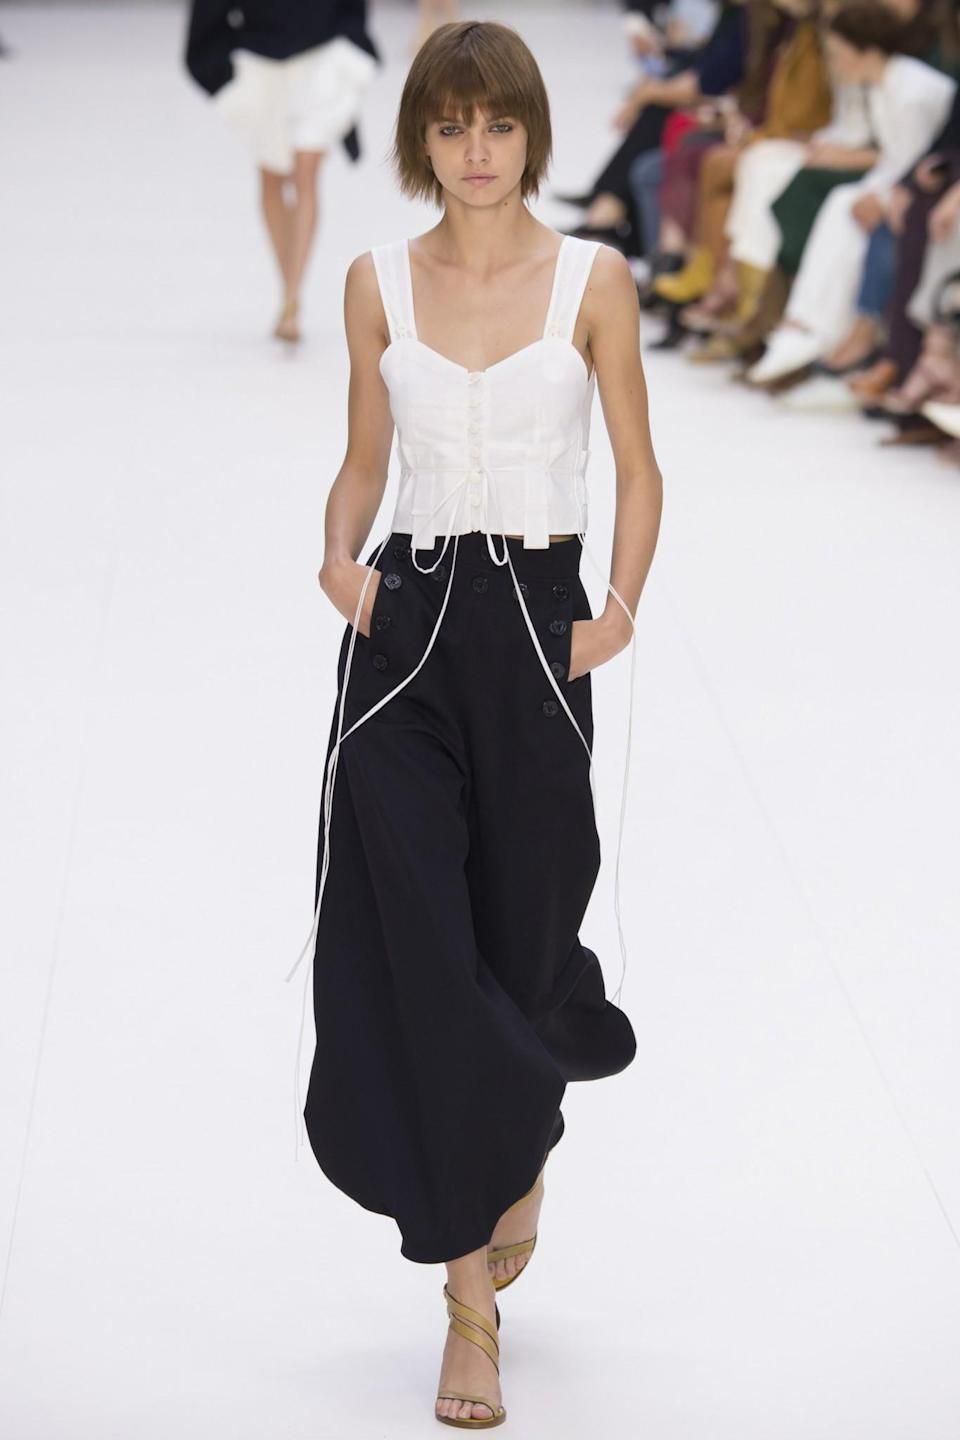 <p>A model on the runway at the Chloé Spring/Summer 2017 show in Paris. (Photo: Getty Images) </p>